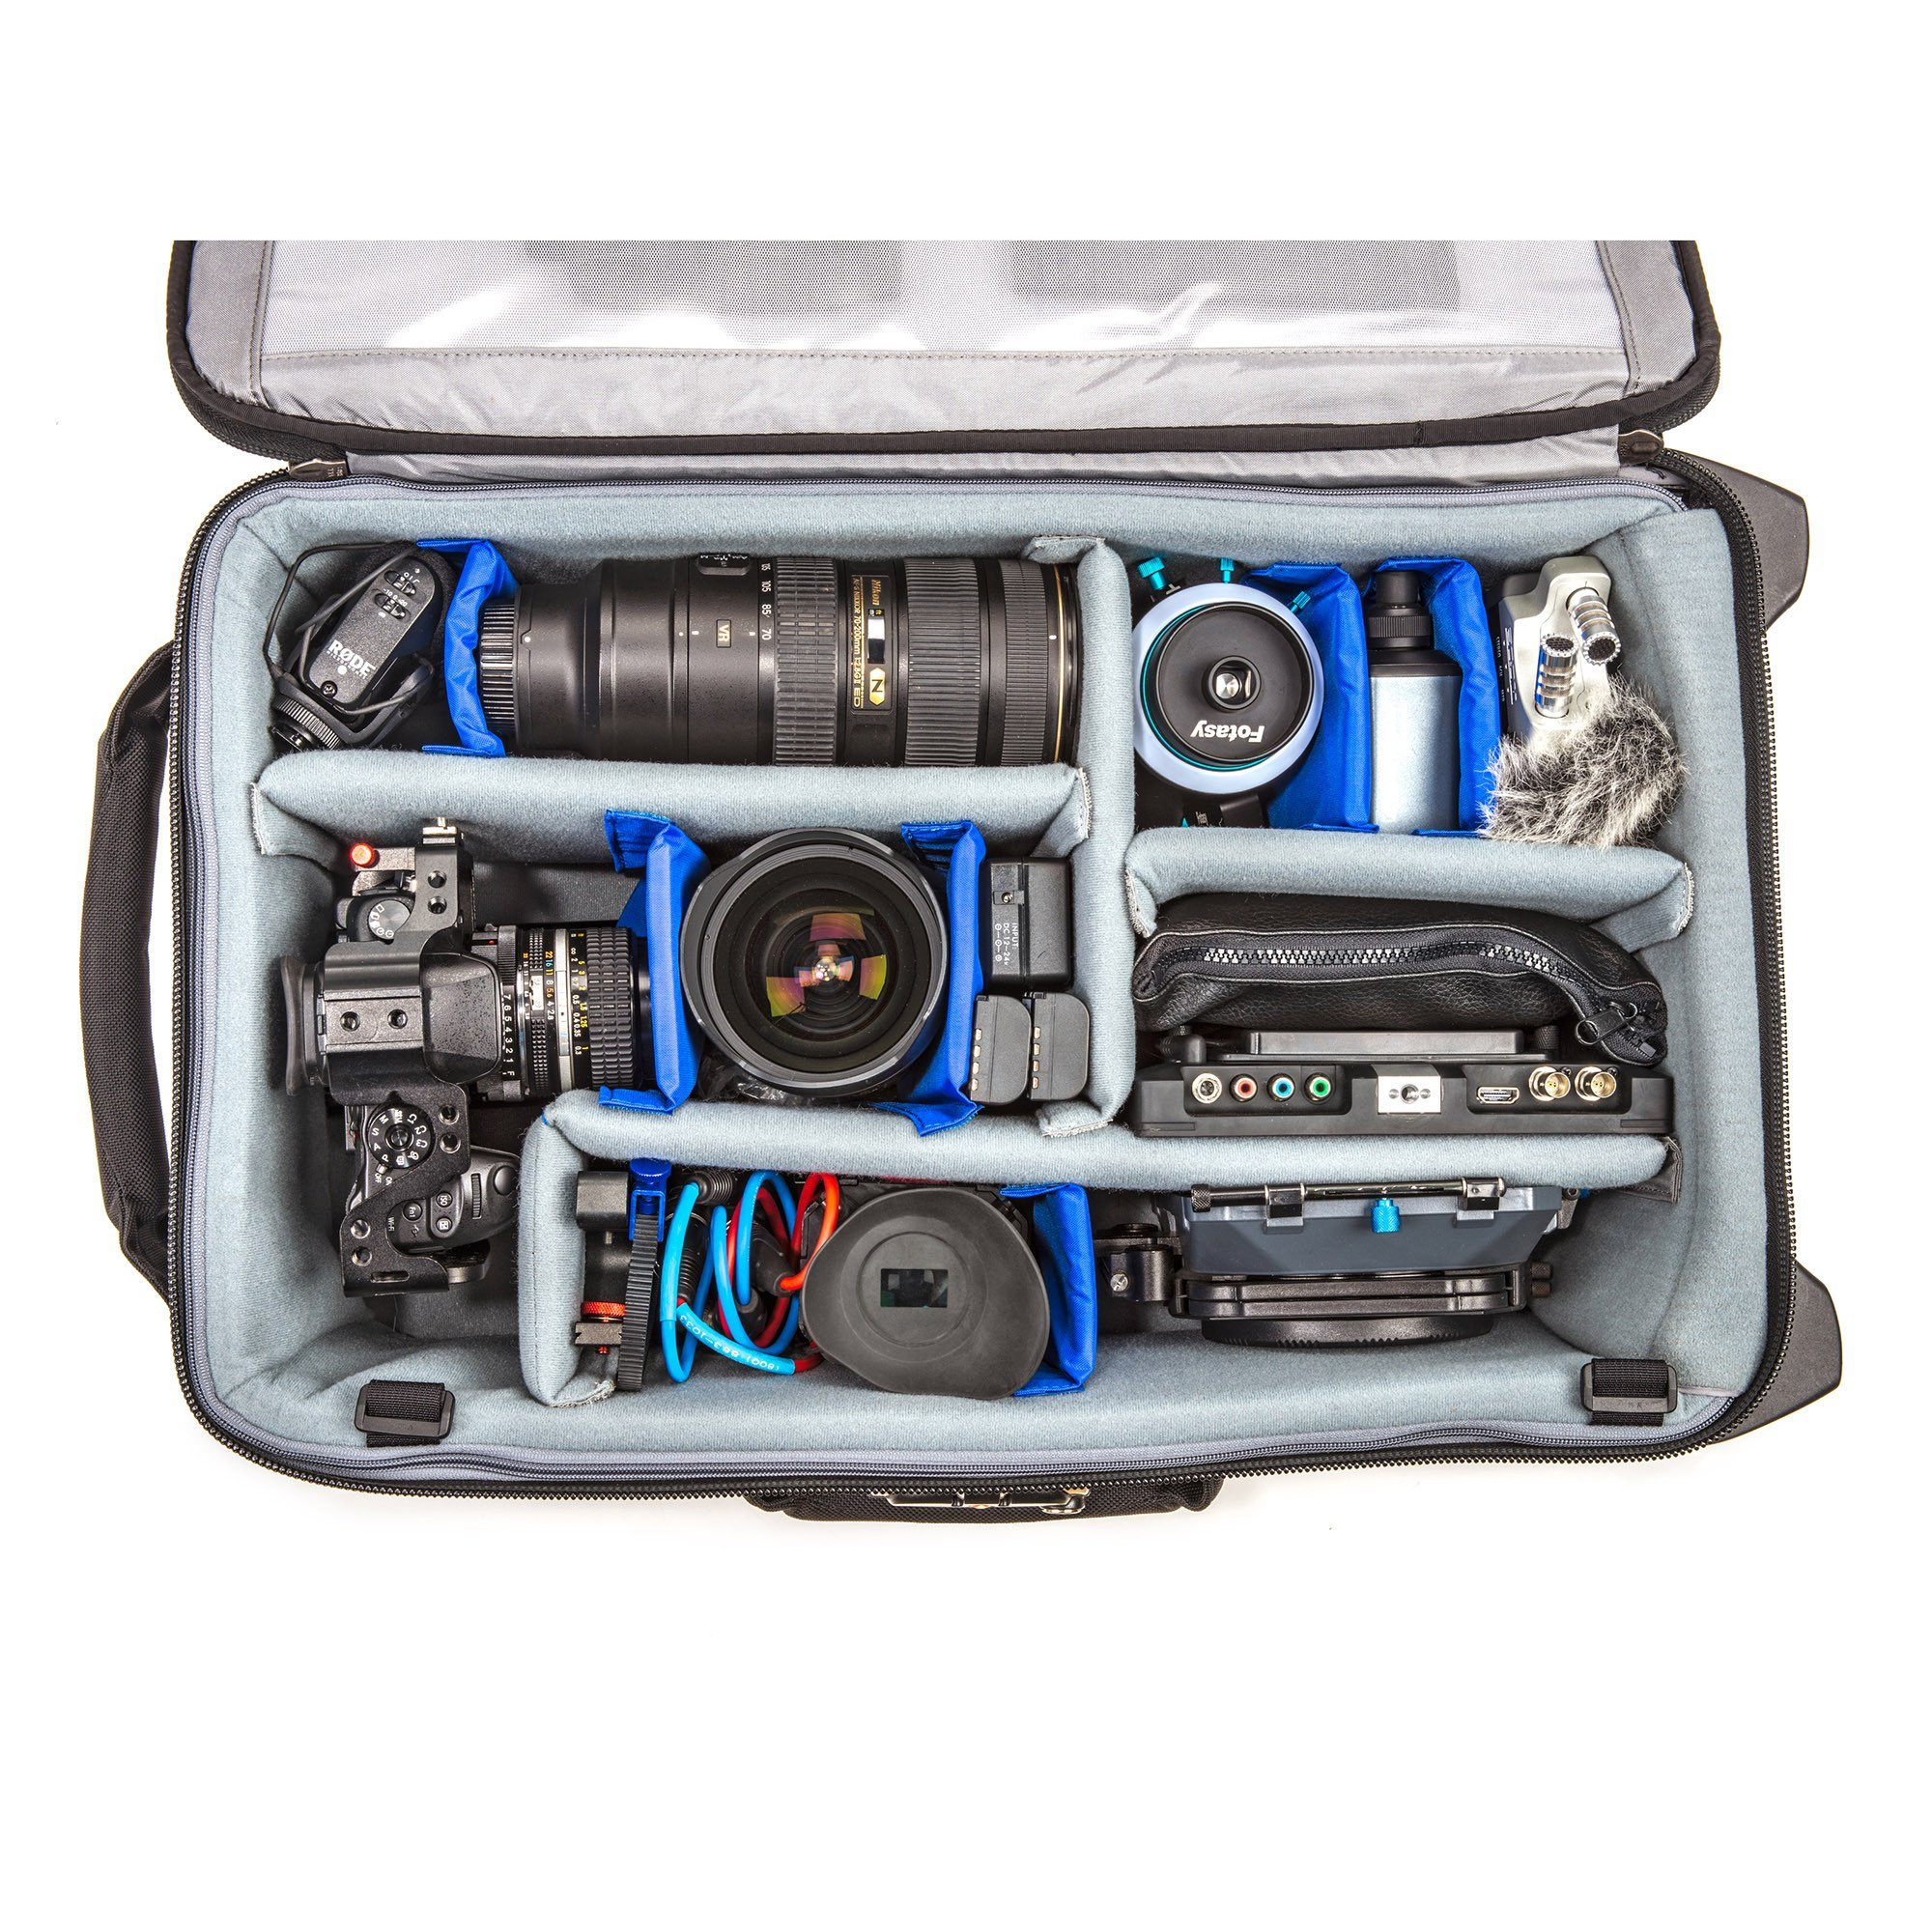 Think Tank Photo Video Transport 20 Carry-On Case (Pacific Slate) by Think Tank (Image #6)